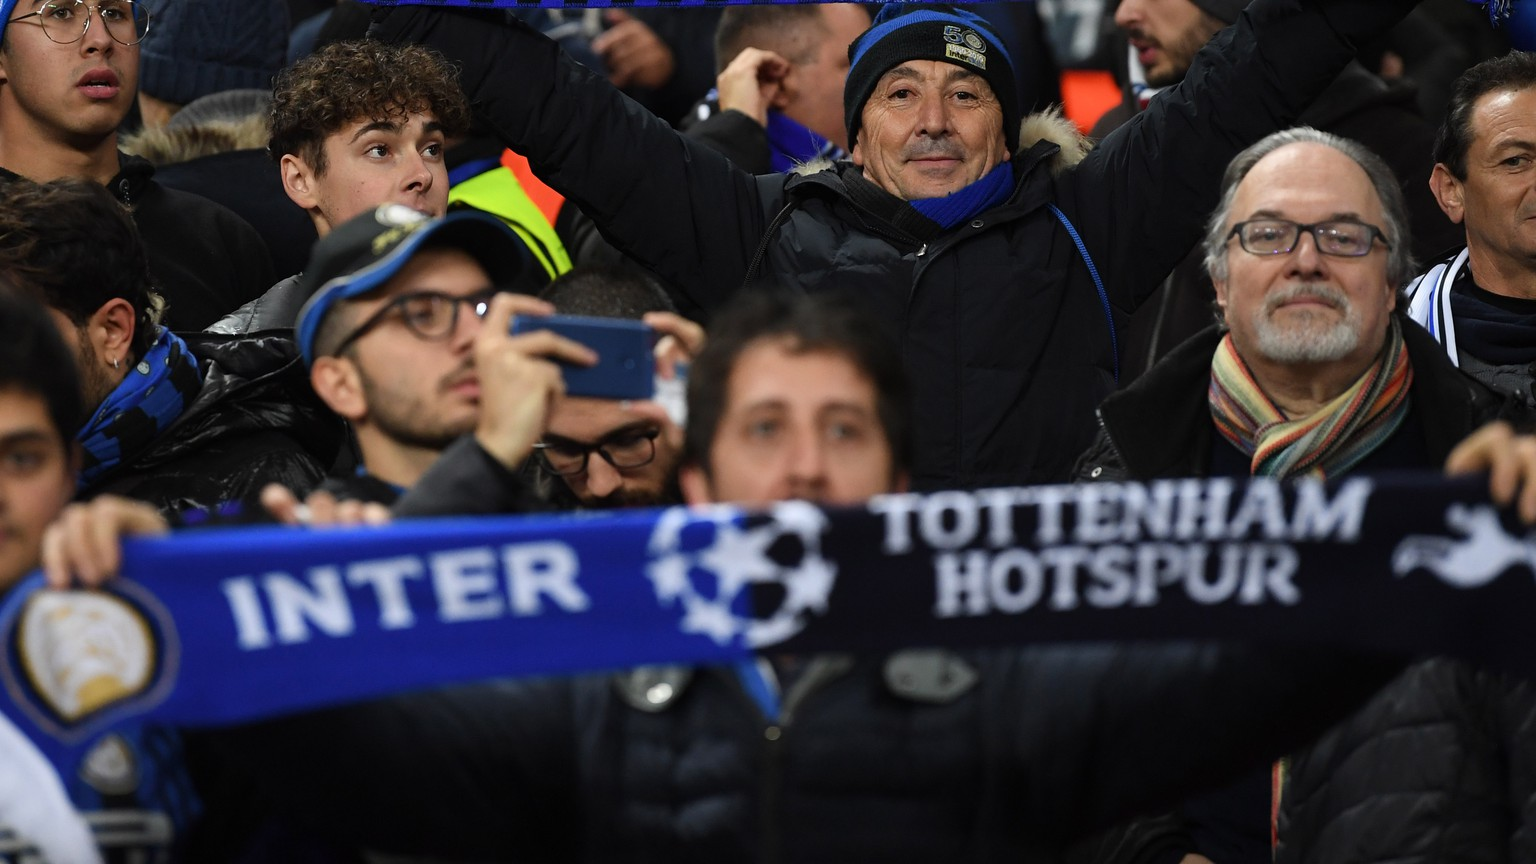 epa07195755 Inter Milan fans cheer for their team ahead of the UEFA Champions League Group B soccer match between Tottenham Hotspur and Inter Milan at Wembley Stadium in London, Britain, 28 November 2018.  EPA/NEIL HALL